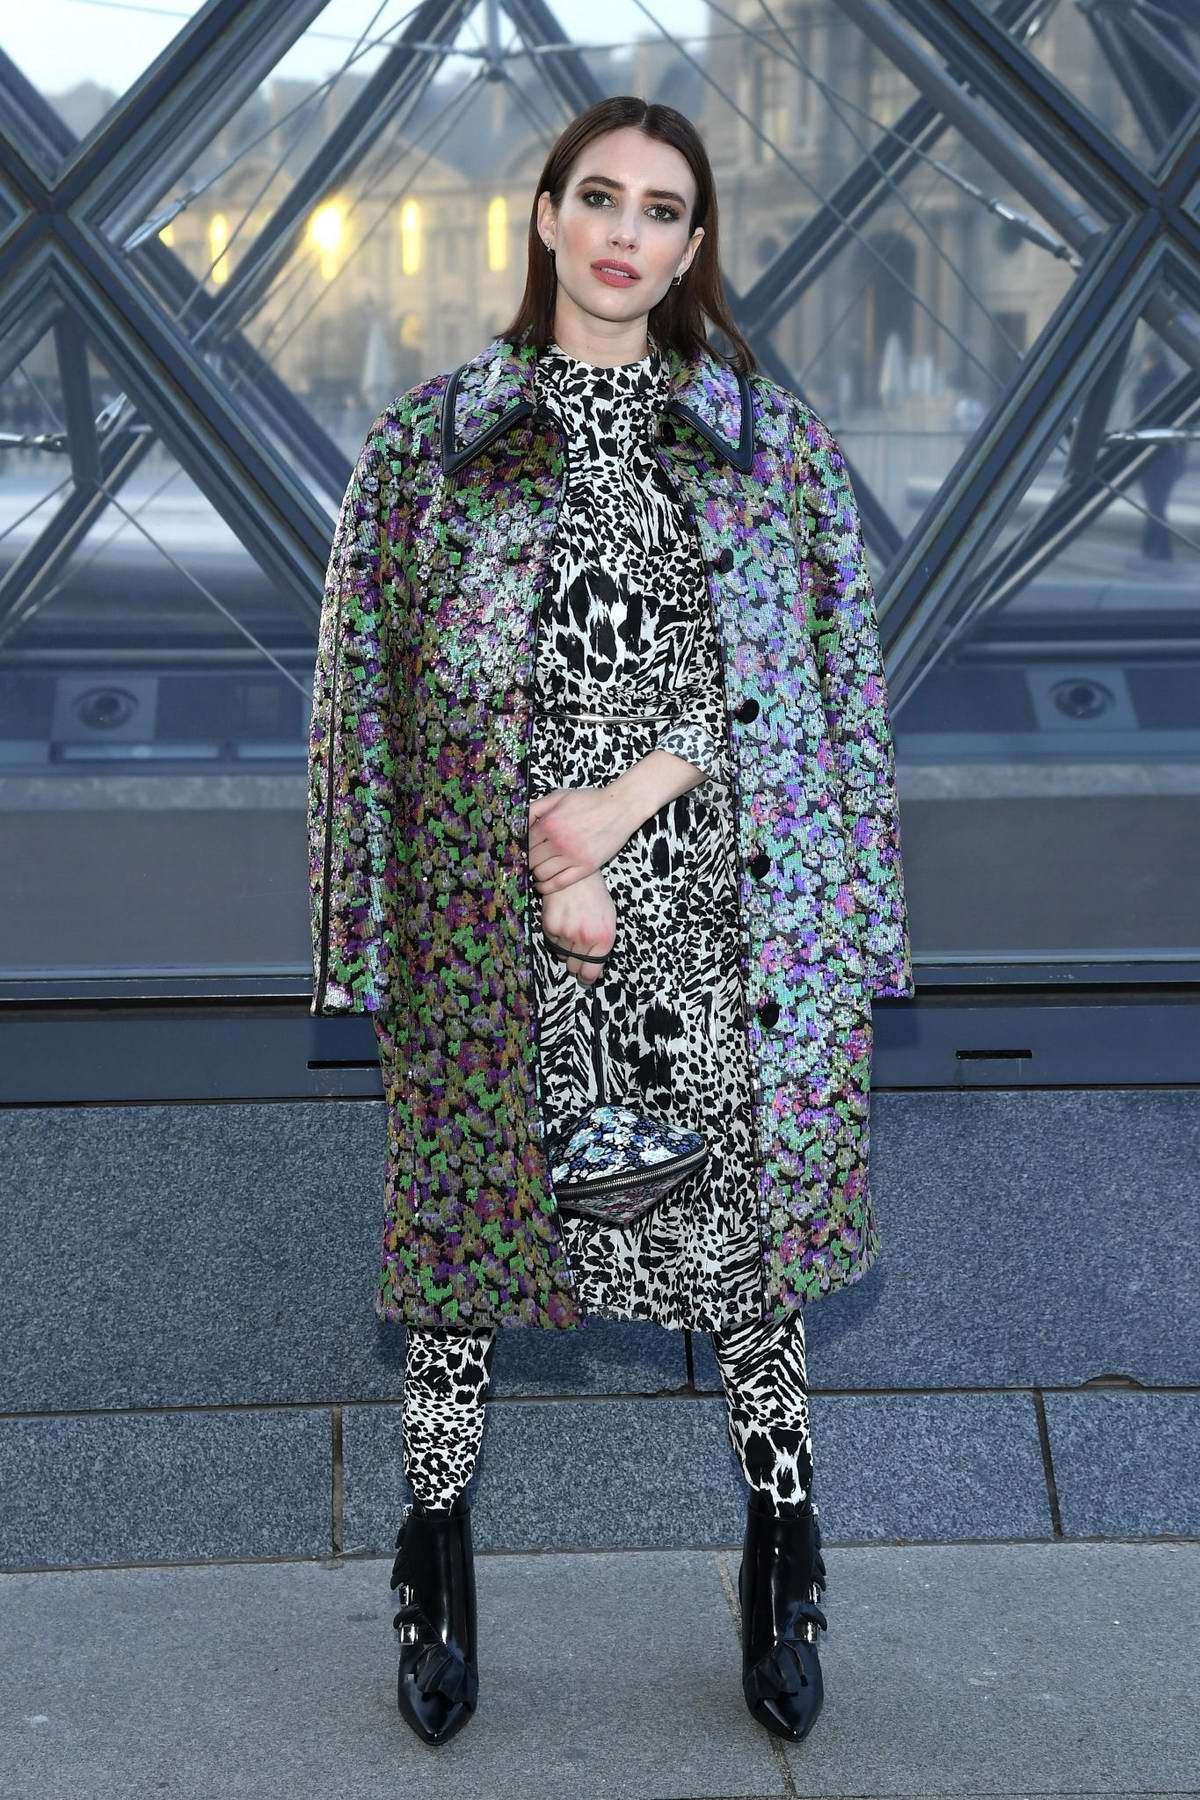 Emma Roberts attends the Louis Vuitton show during Paris Fashion Week F/W 2019/20 in Paris, France